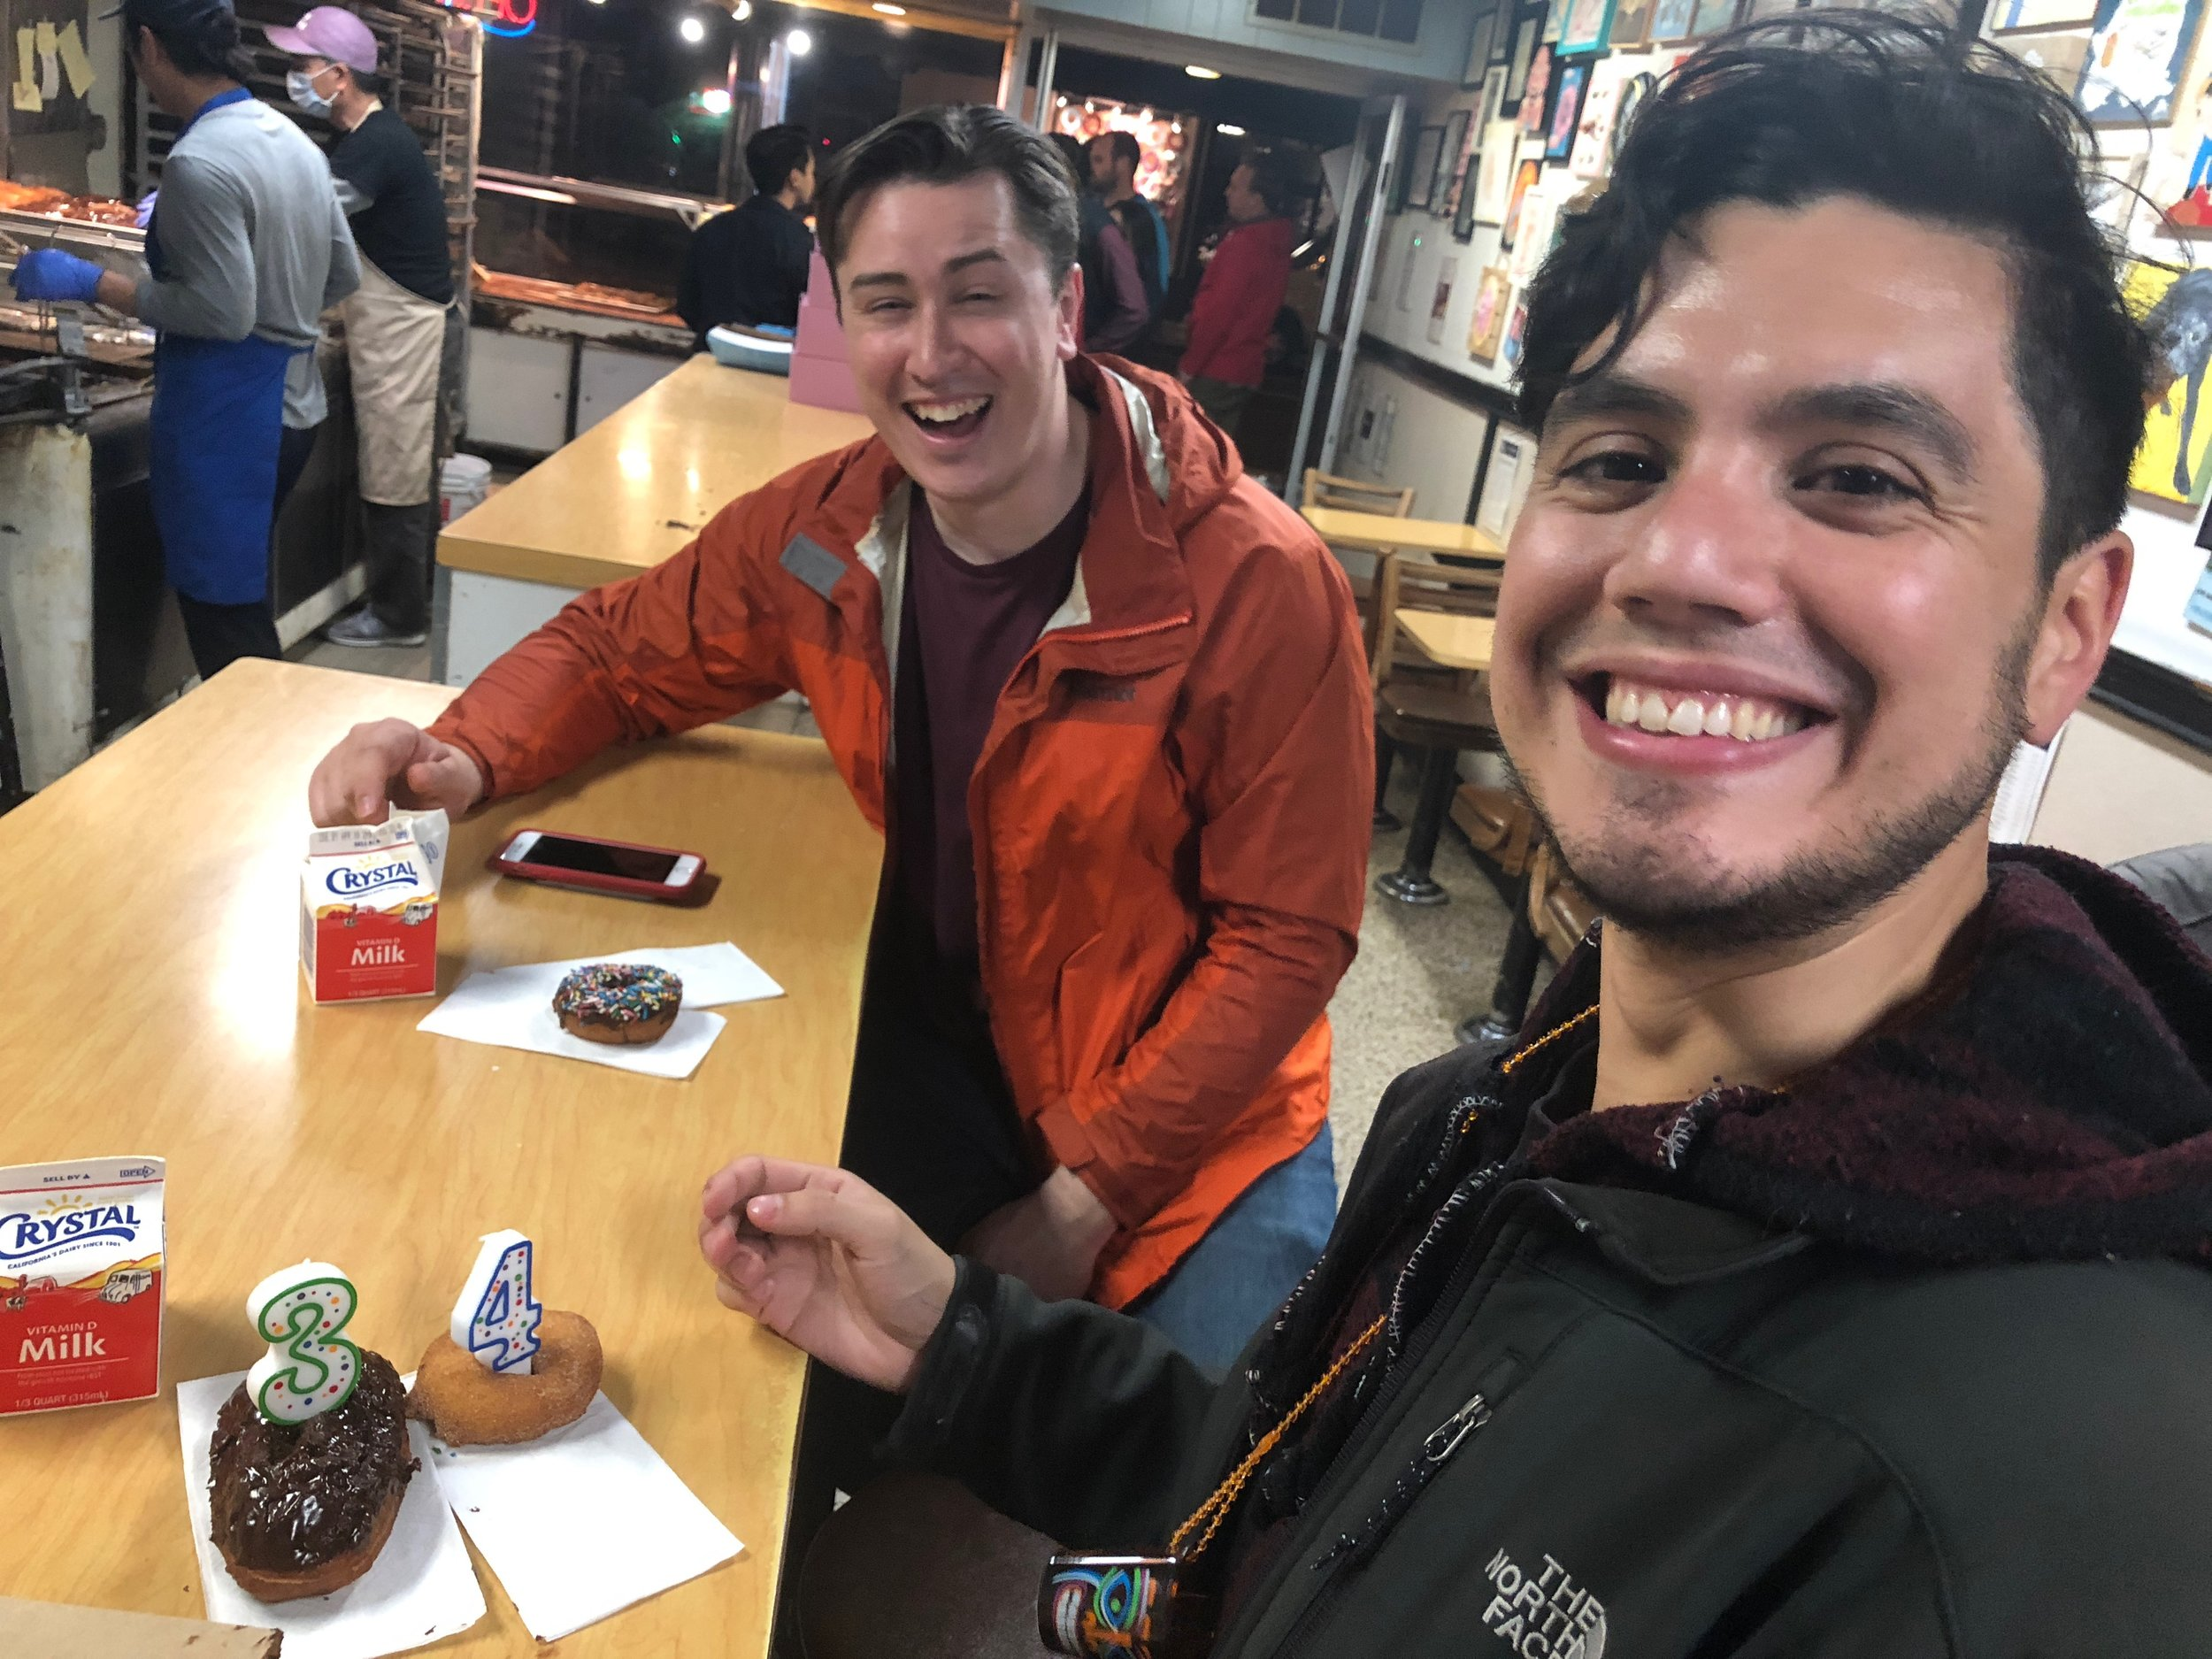 j and bryan with donuts.JPG